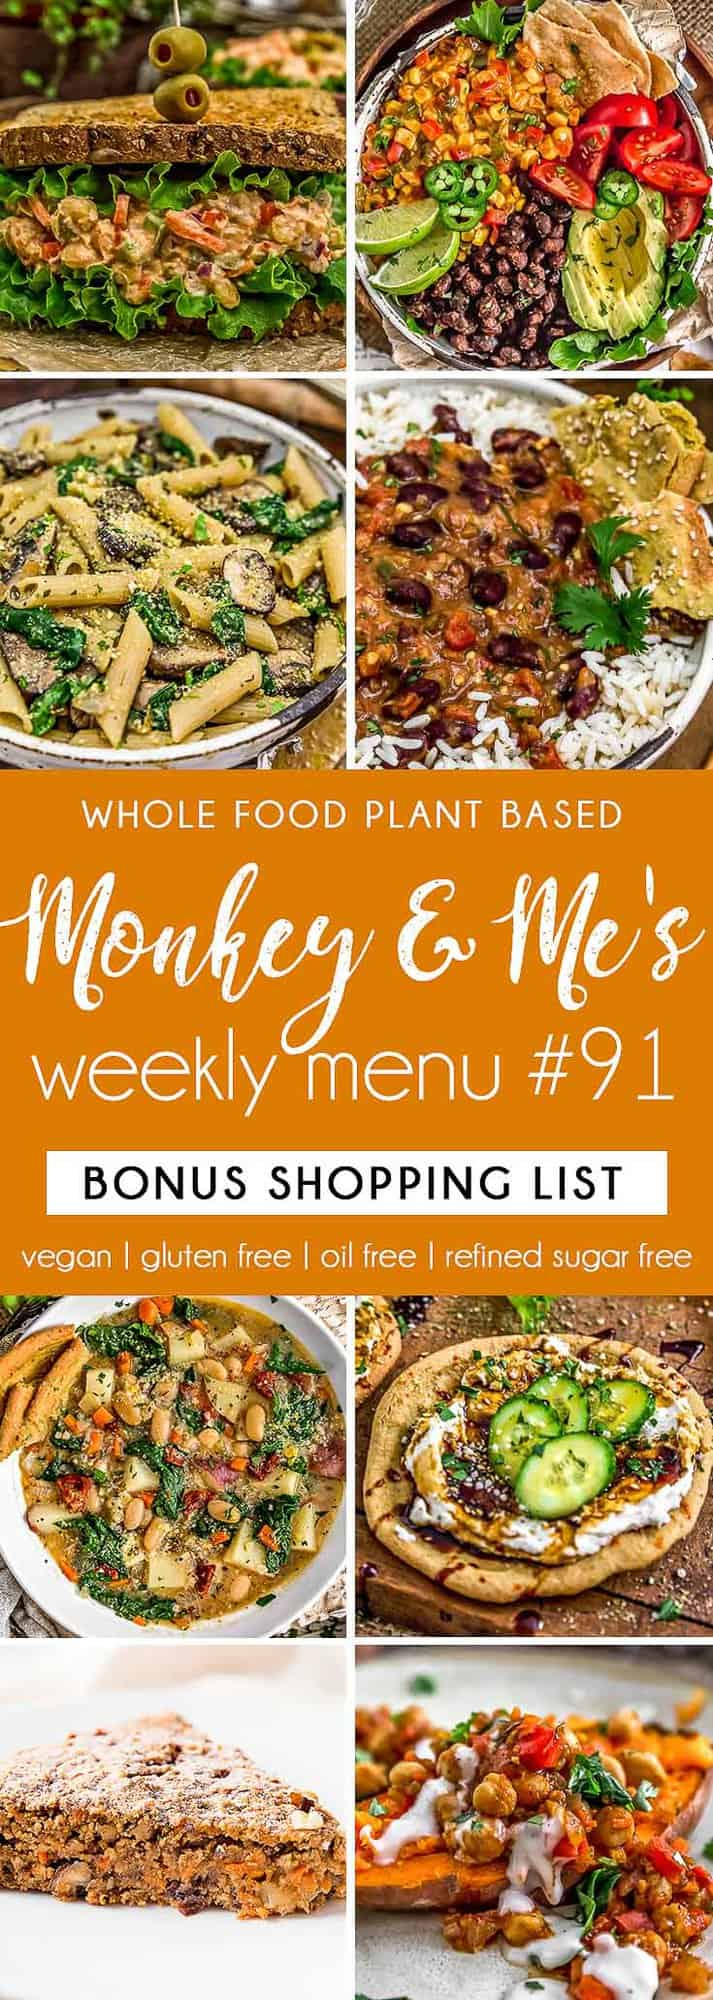 Monkey and Me's Menu 91 featuring 8 recipes